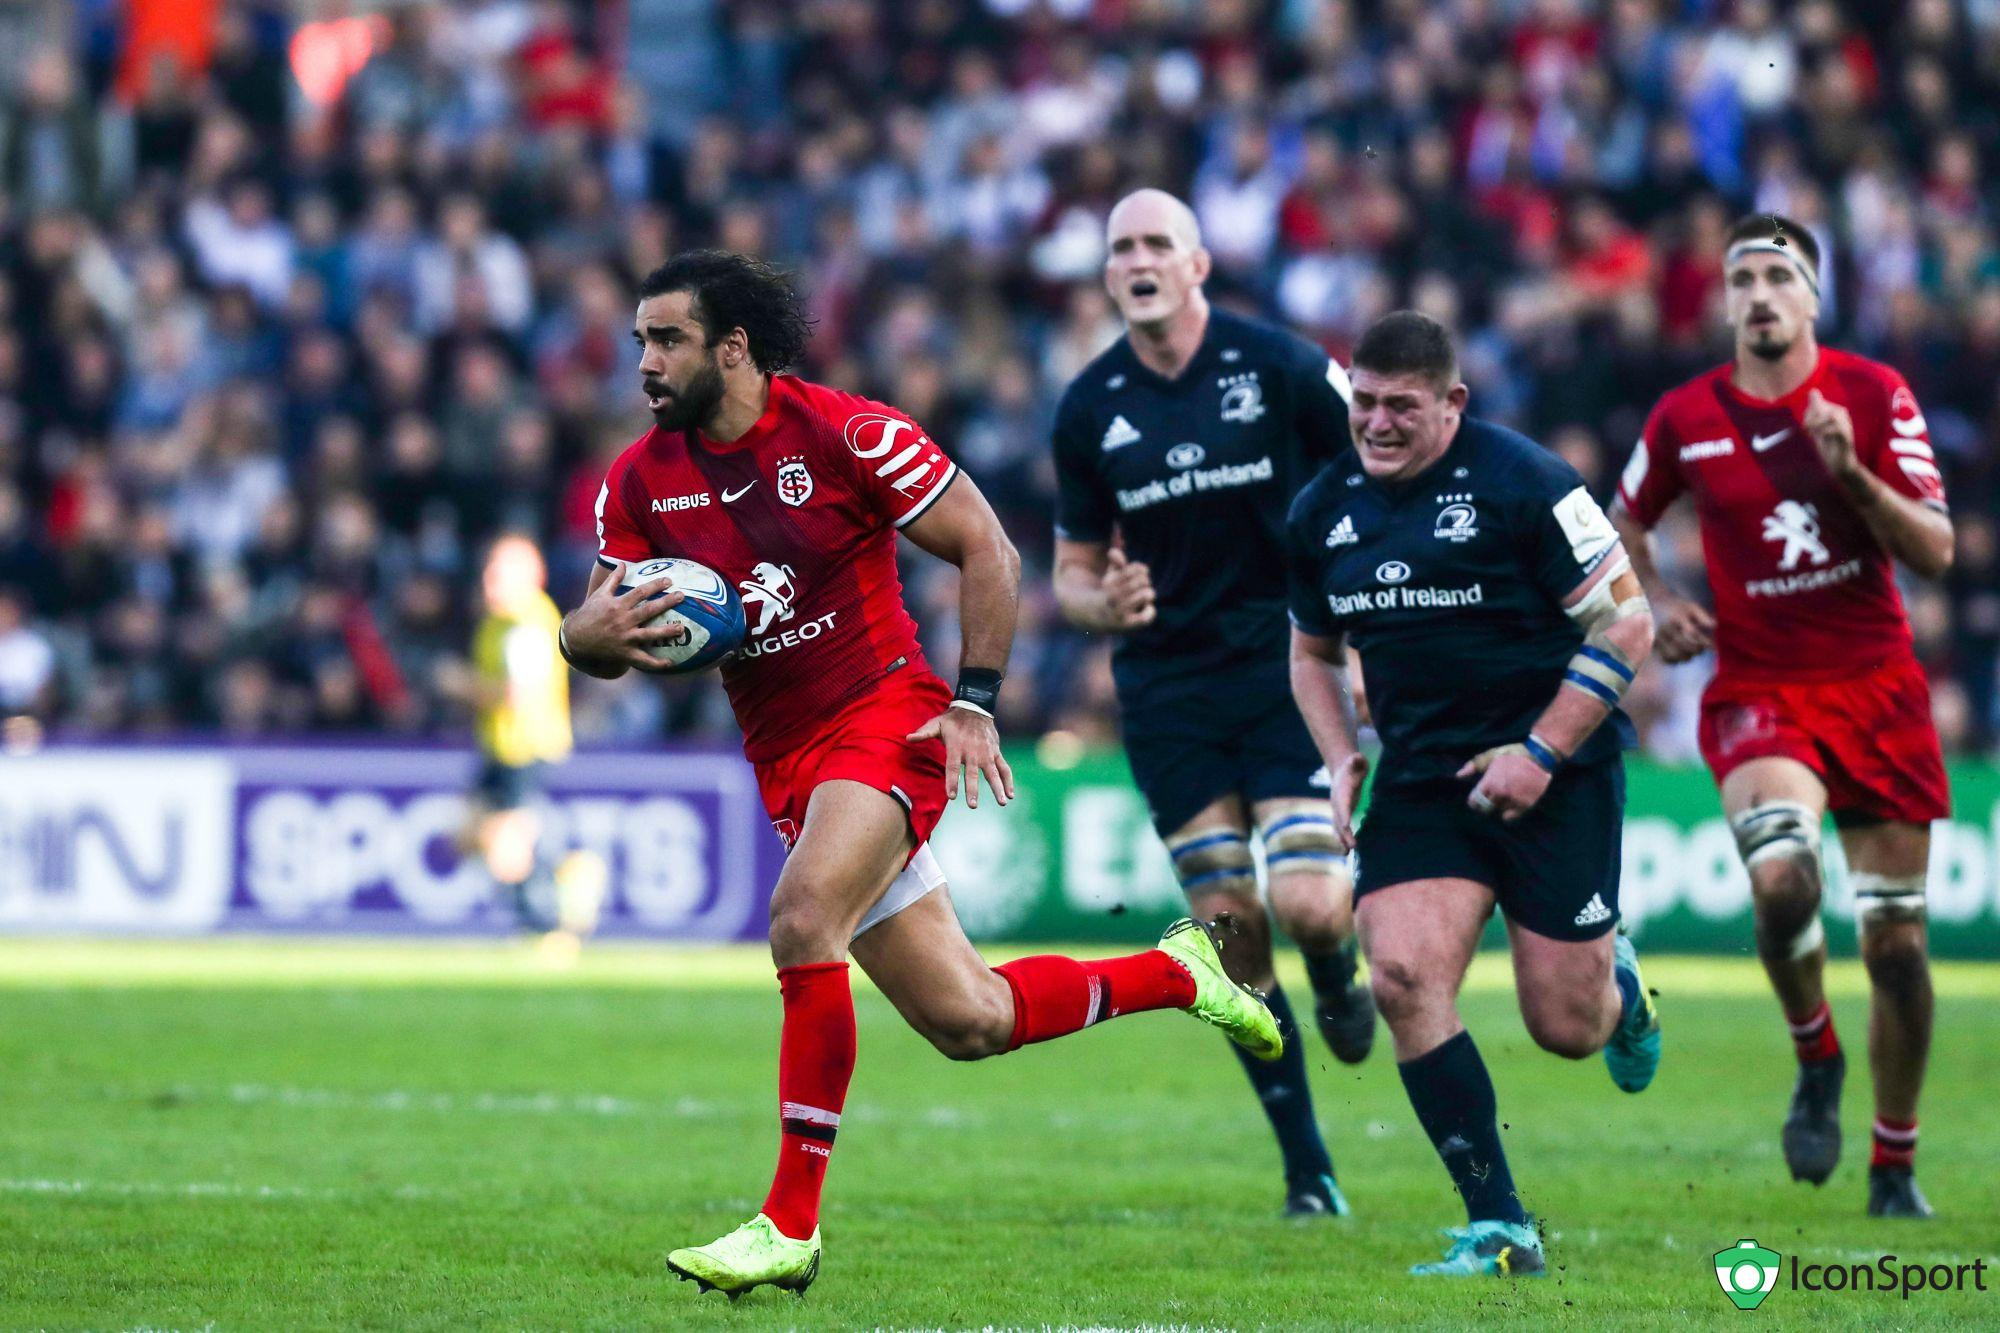 Quart De Finale Coupe D Europe Rugby Champions Cup Vers Un Toulouse Leinster En Quarts Ce Que L On